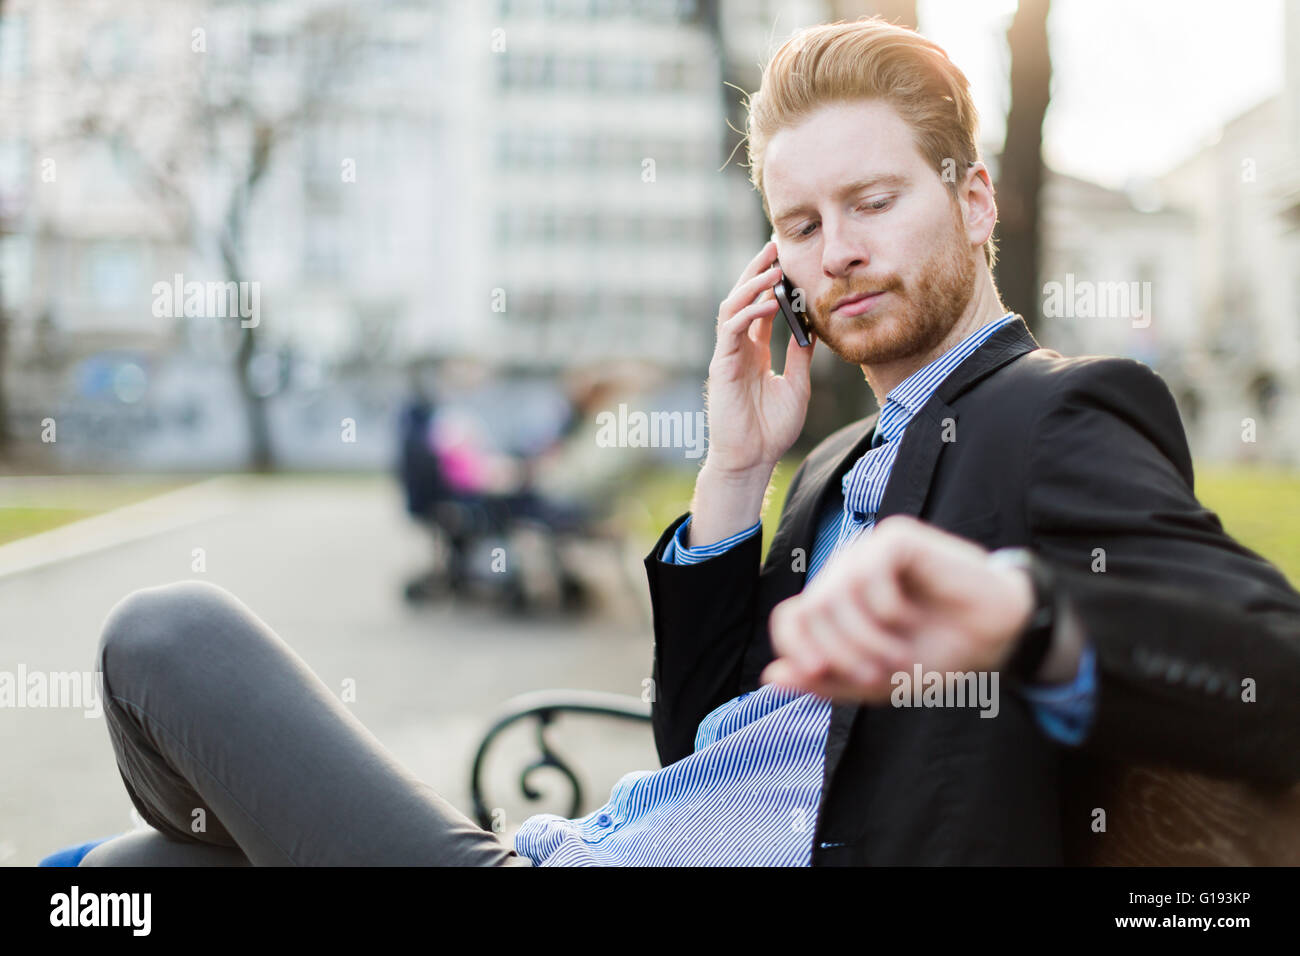 Businessman looking at his wrist watch on a sunny day in a city park - Stock Image